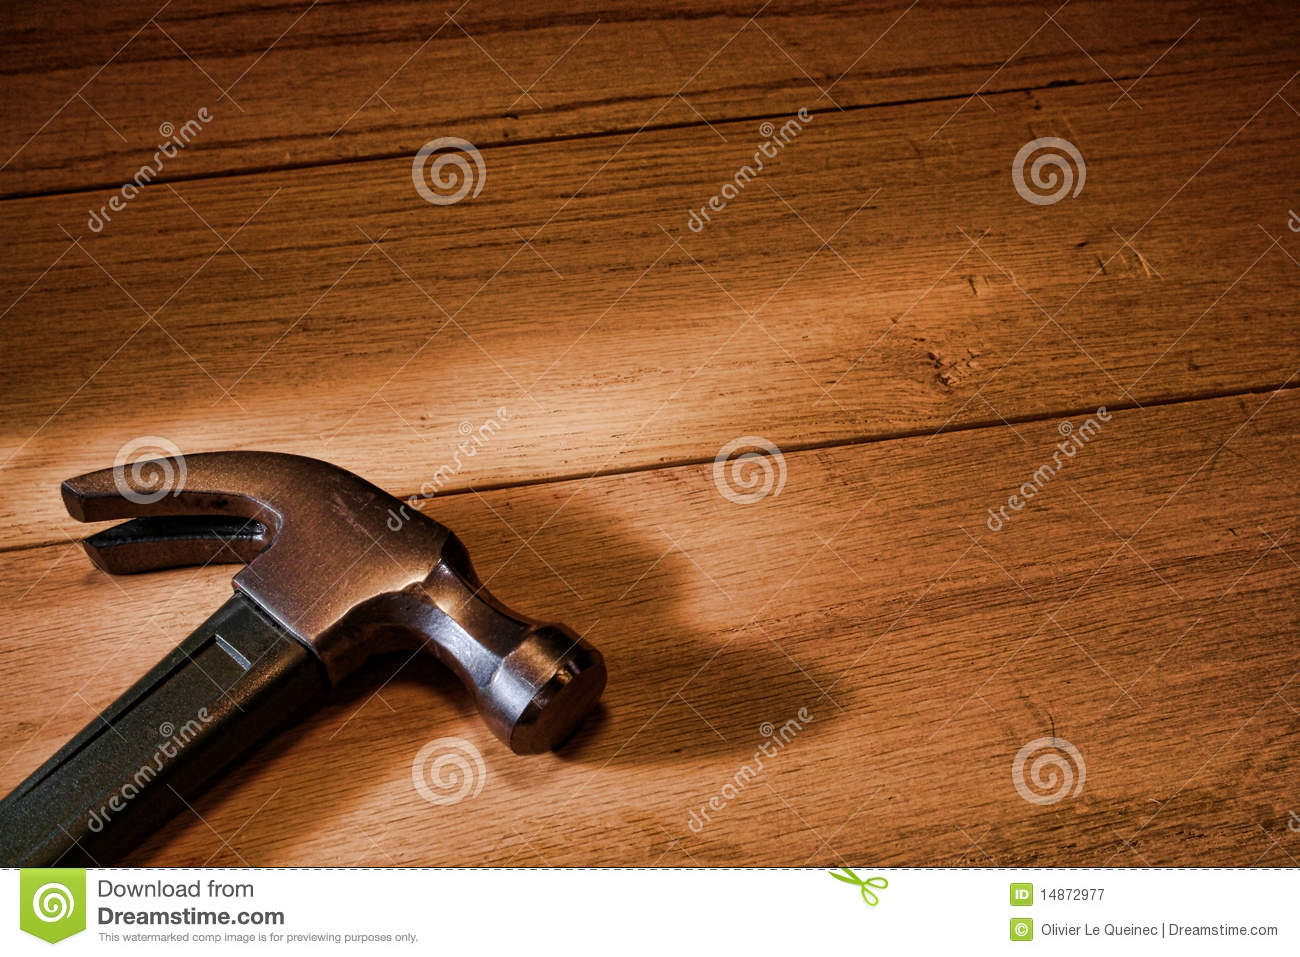 Carpenter Claw Hammer Tool on Oak Wood Boards